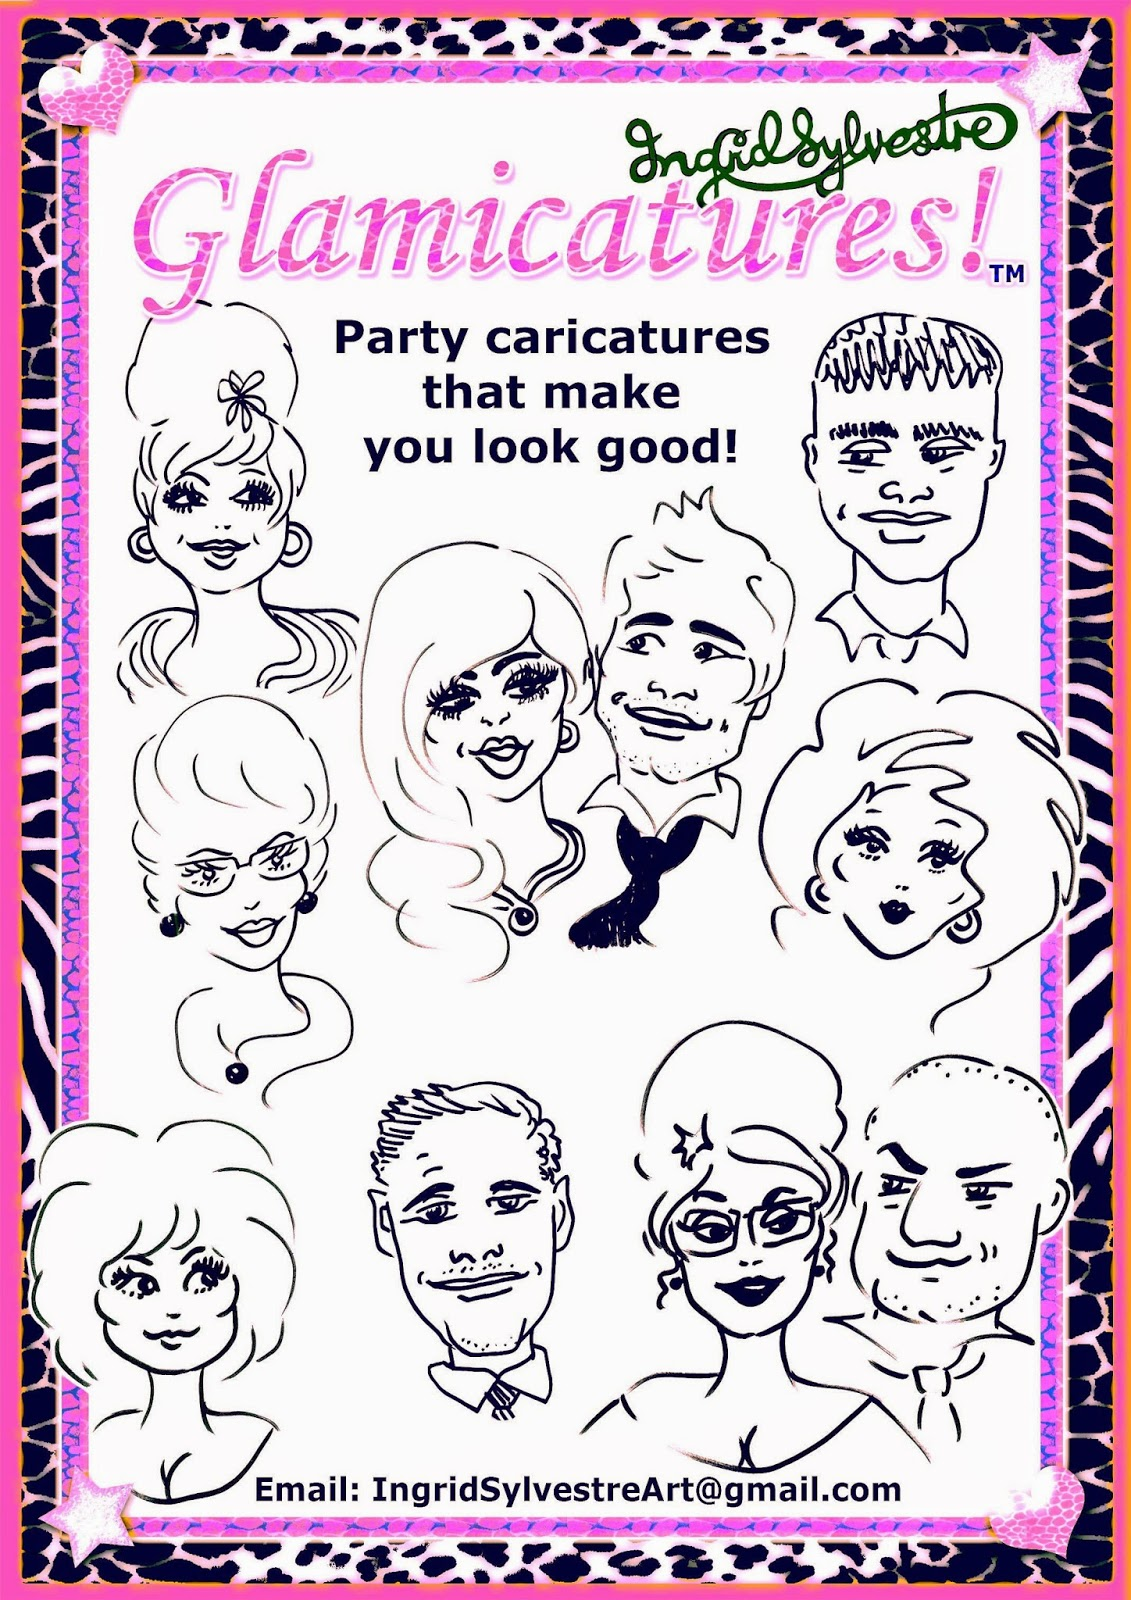 Top quality North East Entertainment Ingrid Sylvestre Glamicatures TM Caricatures that make you look your best Unique Wedding Entertainment ideas County Durham Newcastle upon Tyne Luxury Wedding Entertainment ideas Northumberland Unique Wedding Entertainment ideas Darlington Wedding Reception Entertainment ideas Middlesbrough Teesside Wedding Evening Entertainment ideas Sunderland Distinctive Wedding Entertainment Yorkshire Wedding Entertainment North East UK